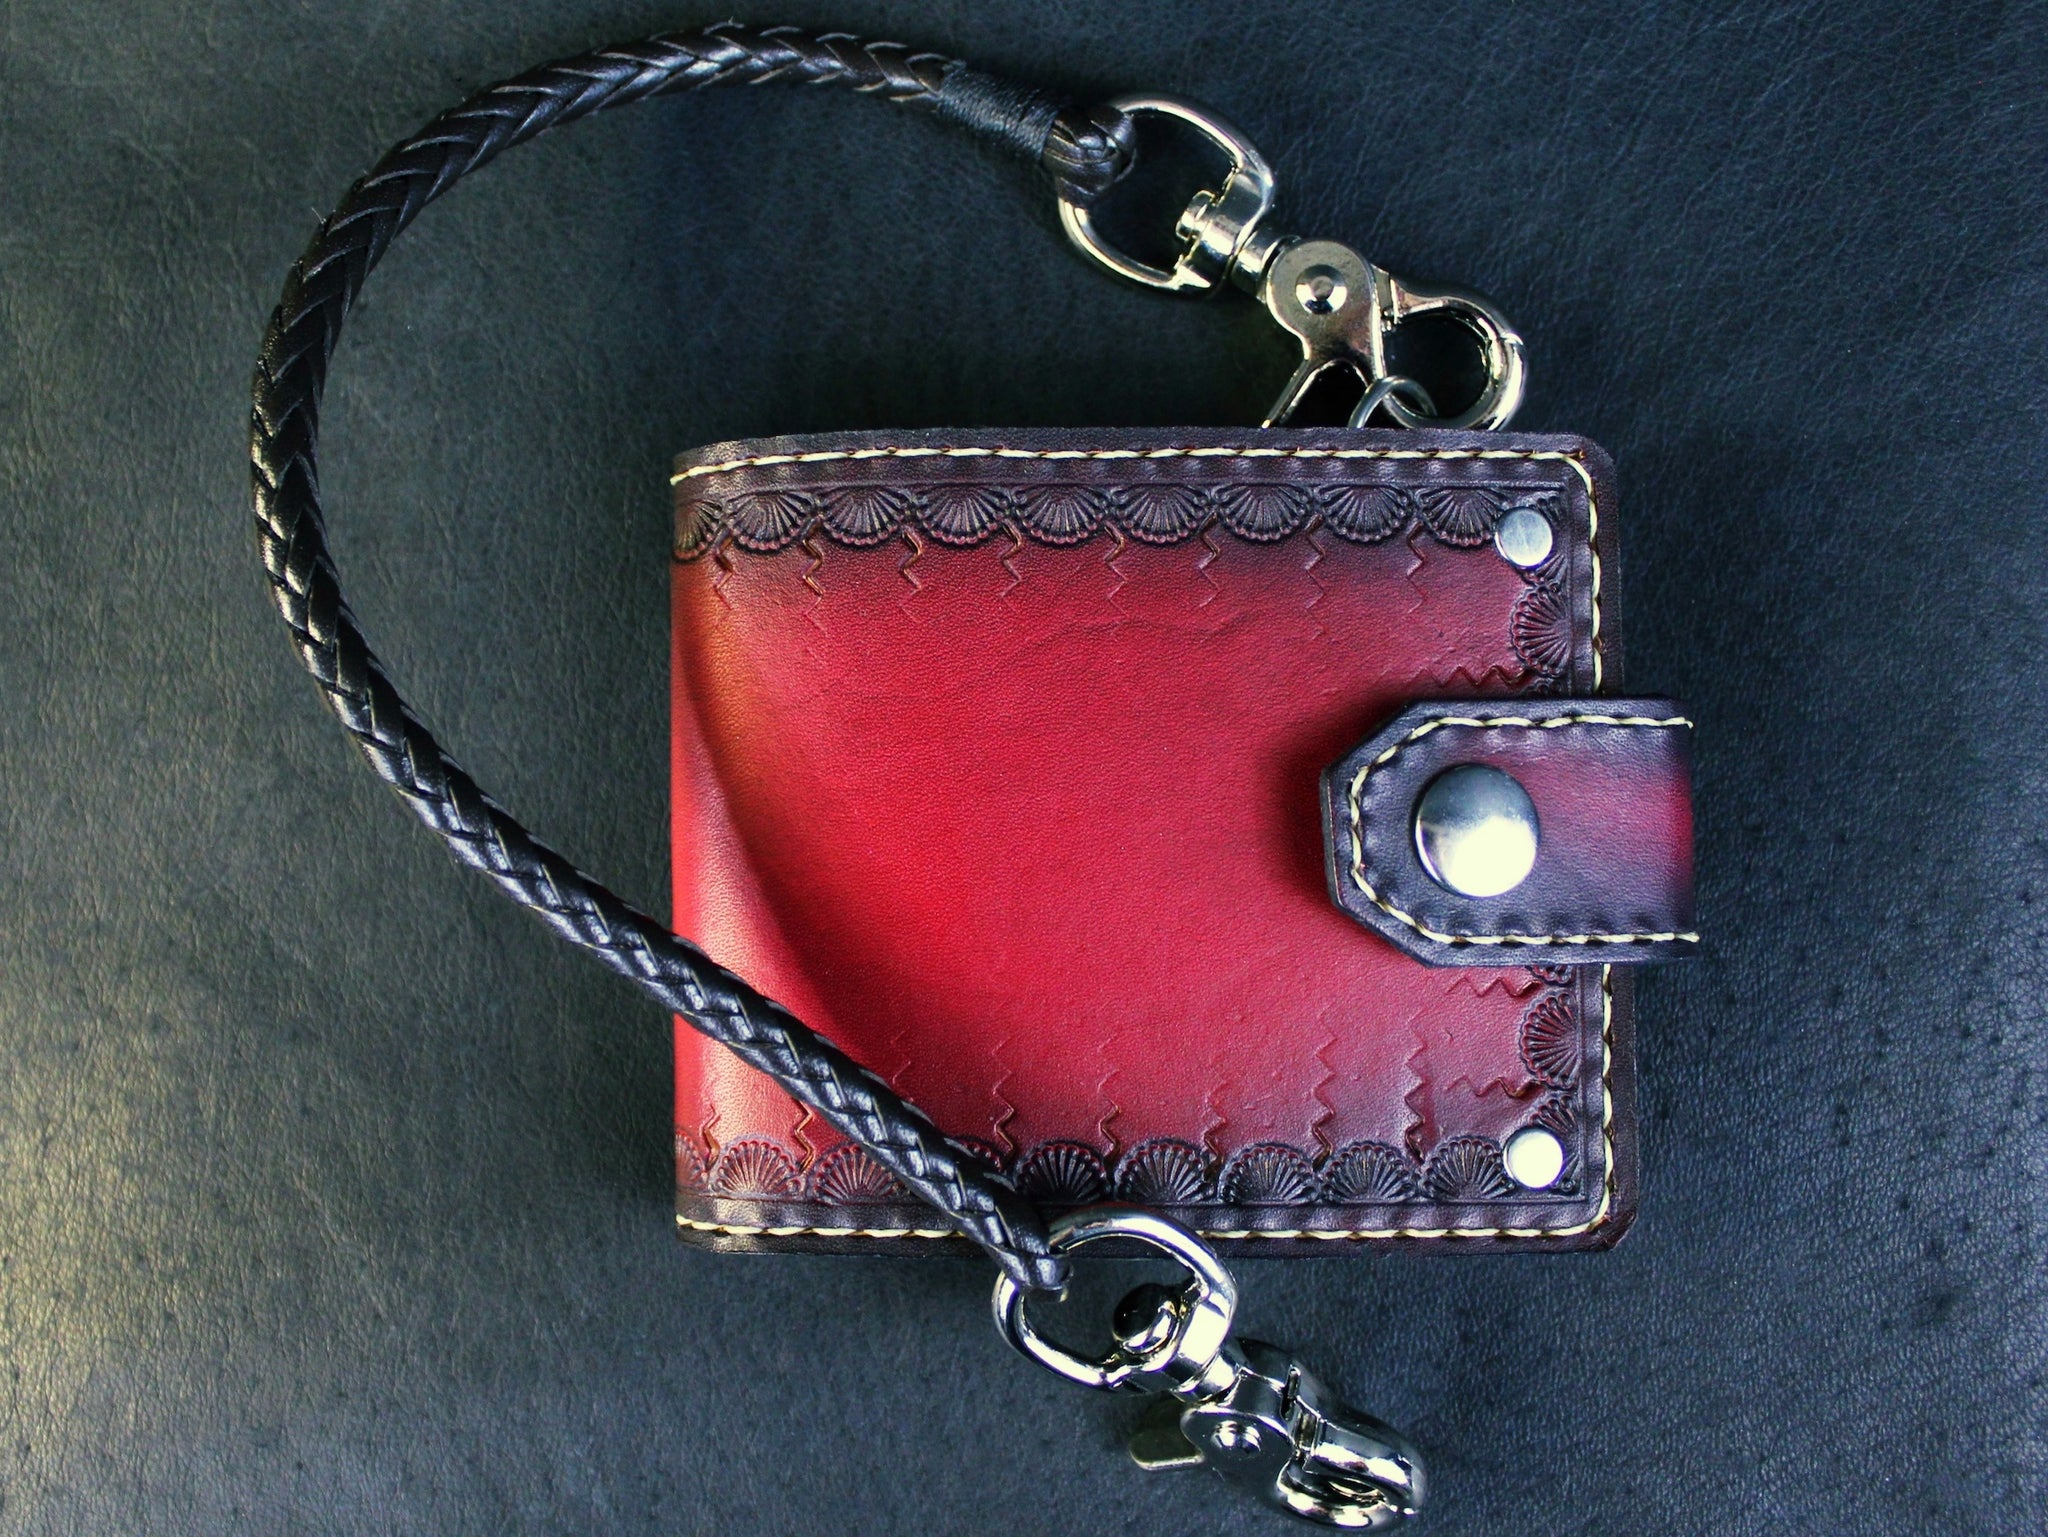 Custom red tooled leather wallet  with chain mens fashion by san filippo leather high end wallets